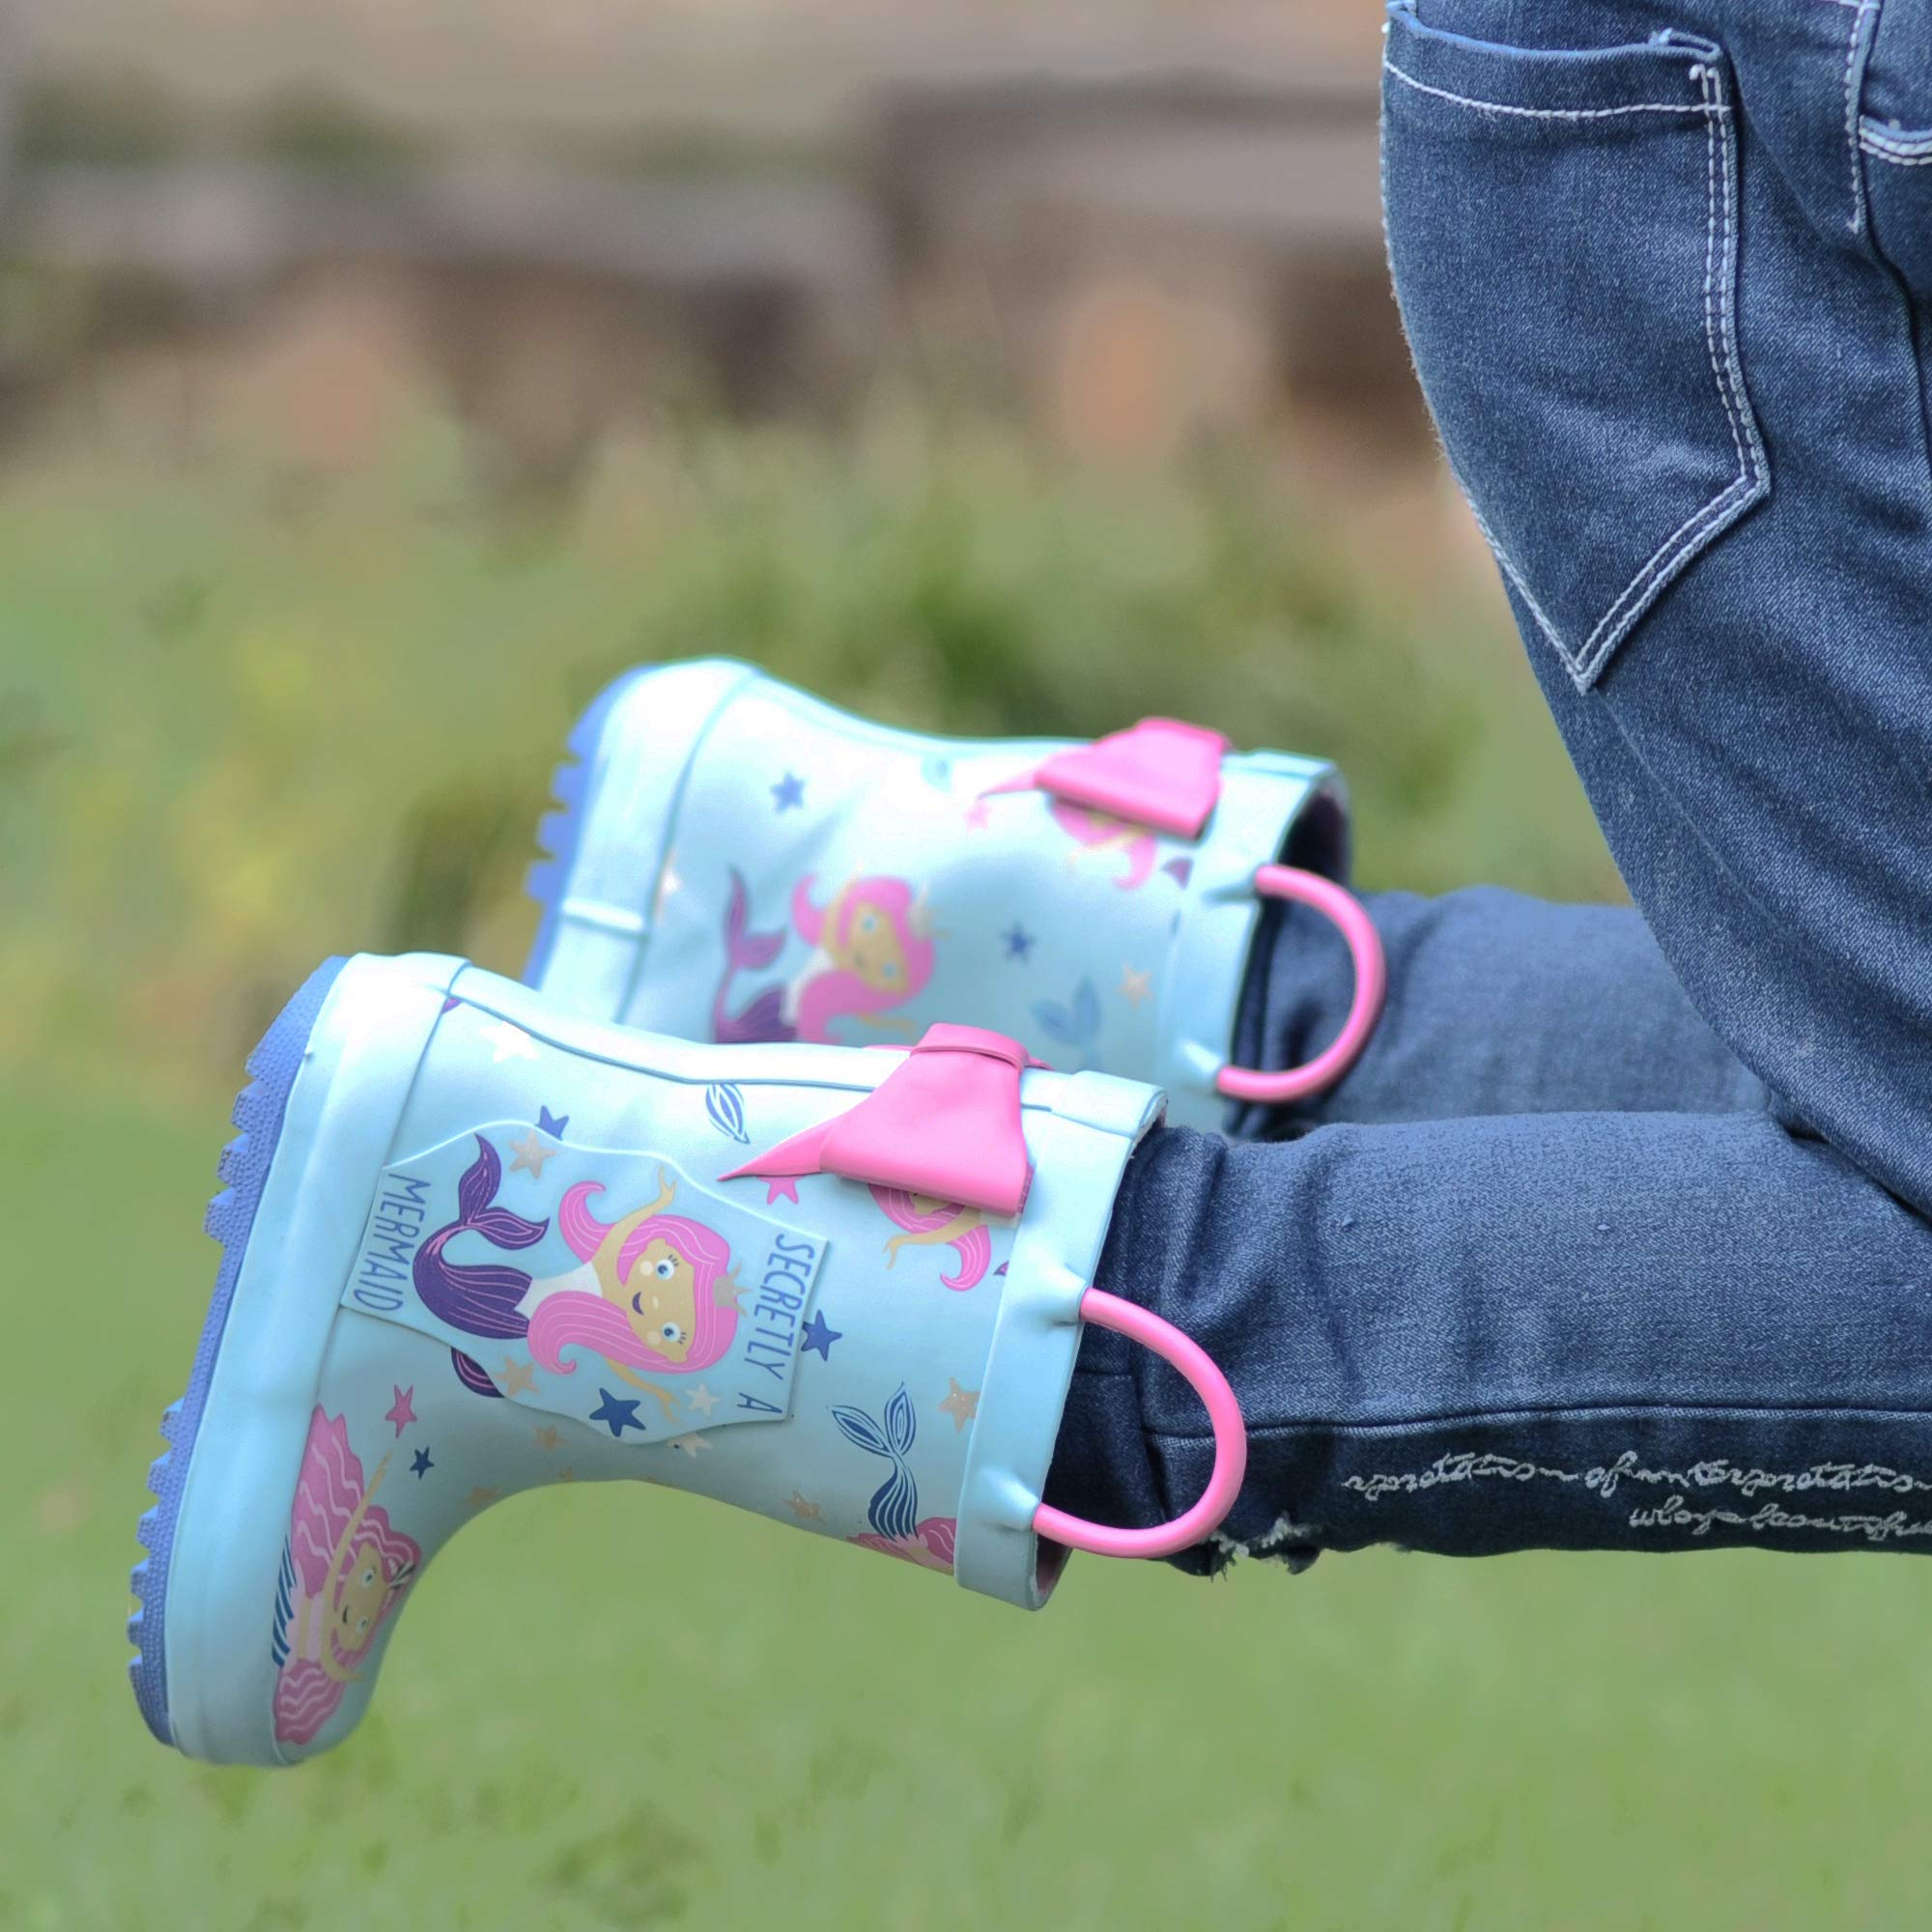 SHOFORT Girls' Rain Boots Rubber Handles Toddler, Size 9 by SHOFORT (Image #2)